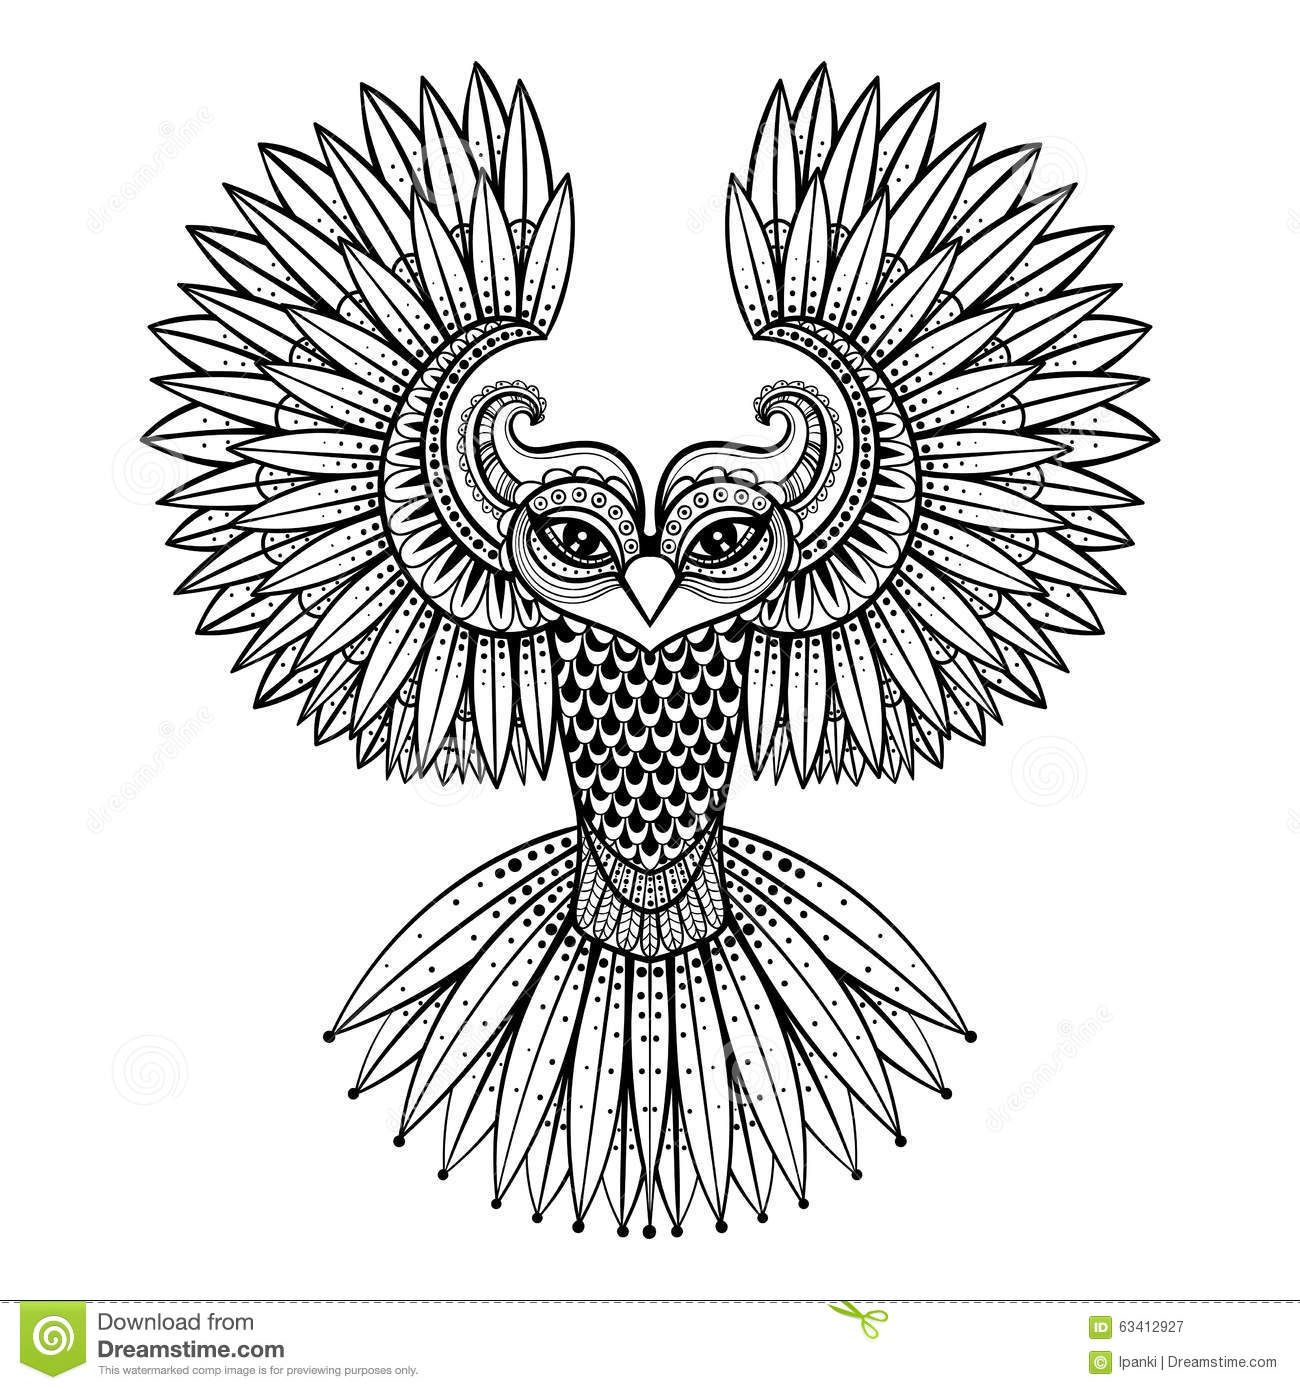 Coloring pages of mehndi hand pattern - Vector Ornamental Owl Ethnic Zentangled Mascot Amulet Mask Of Bird Patterned Animal For Adult Anti Stress Coloring Pages Hand Drawn Totem Illustration